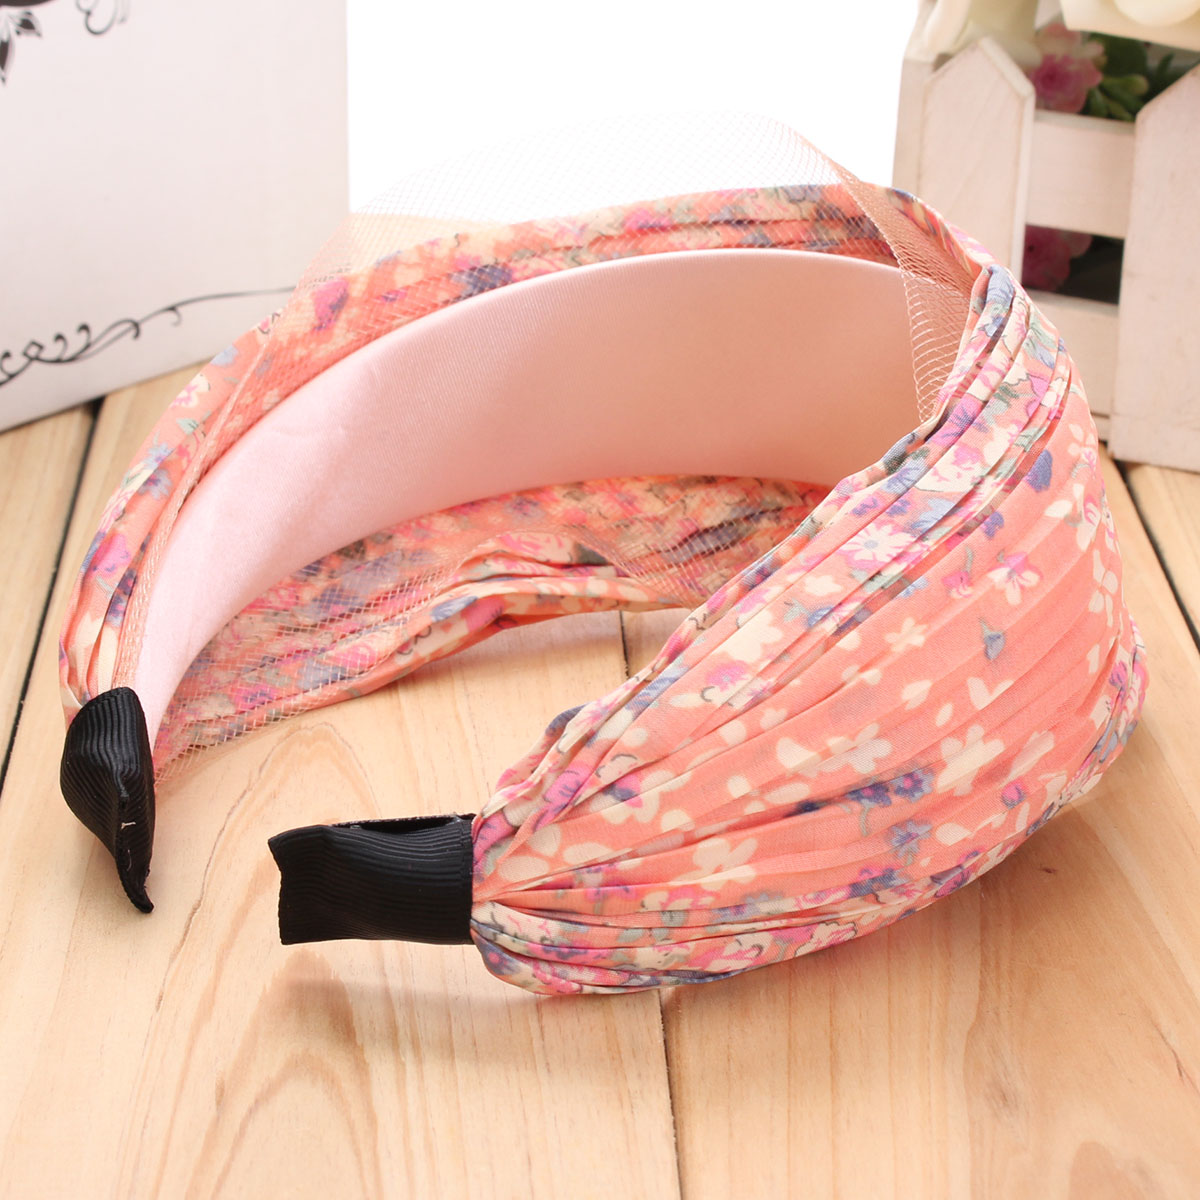 Women's Retro Wide Pleated Floral Headbrand Hair Band Accessories